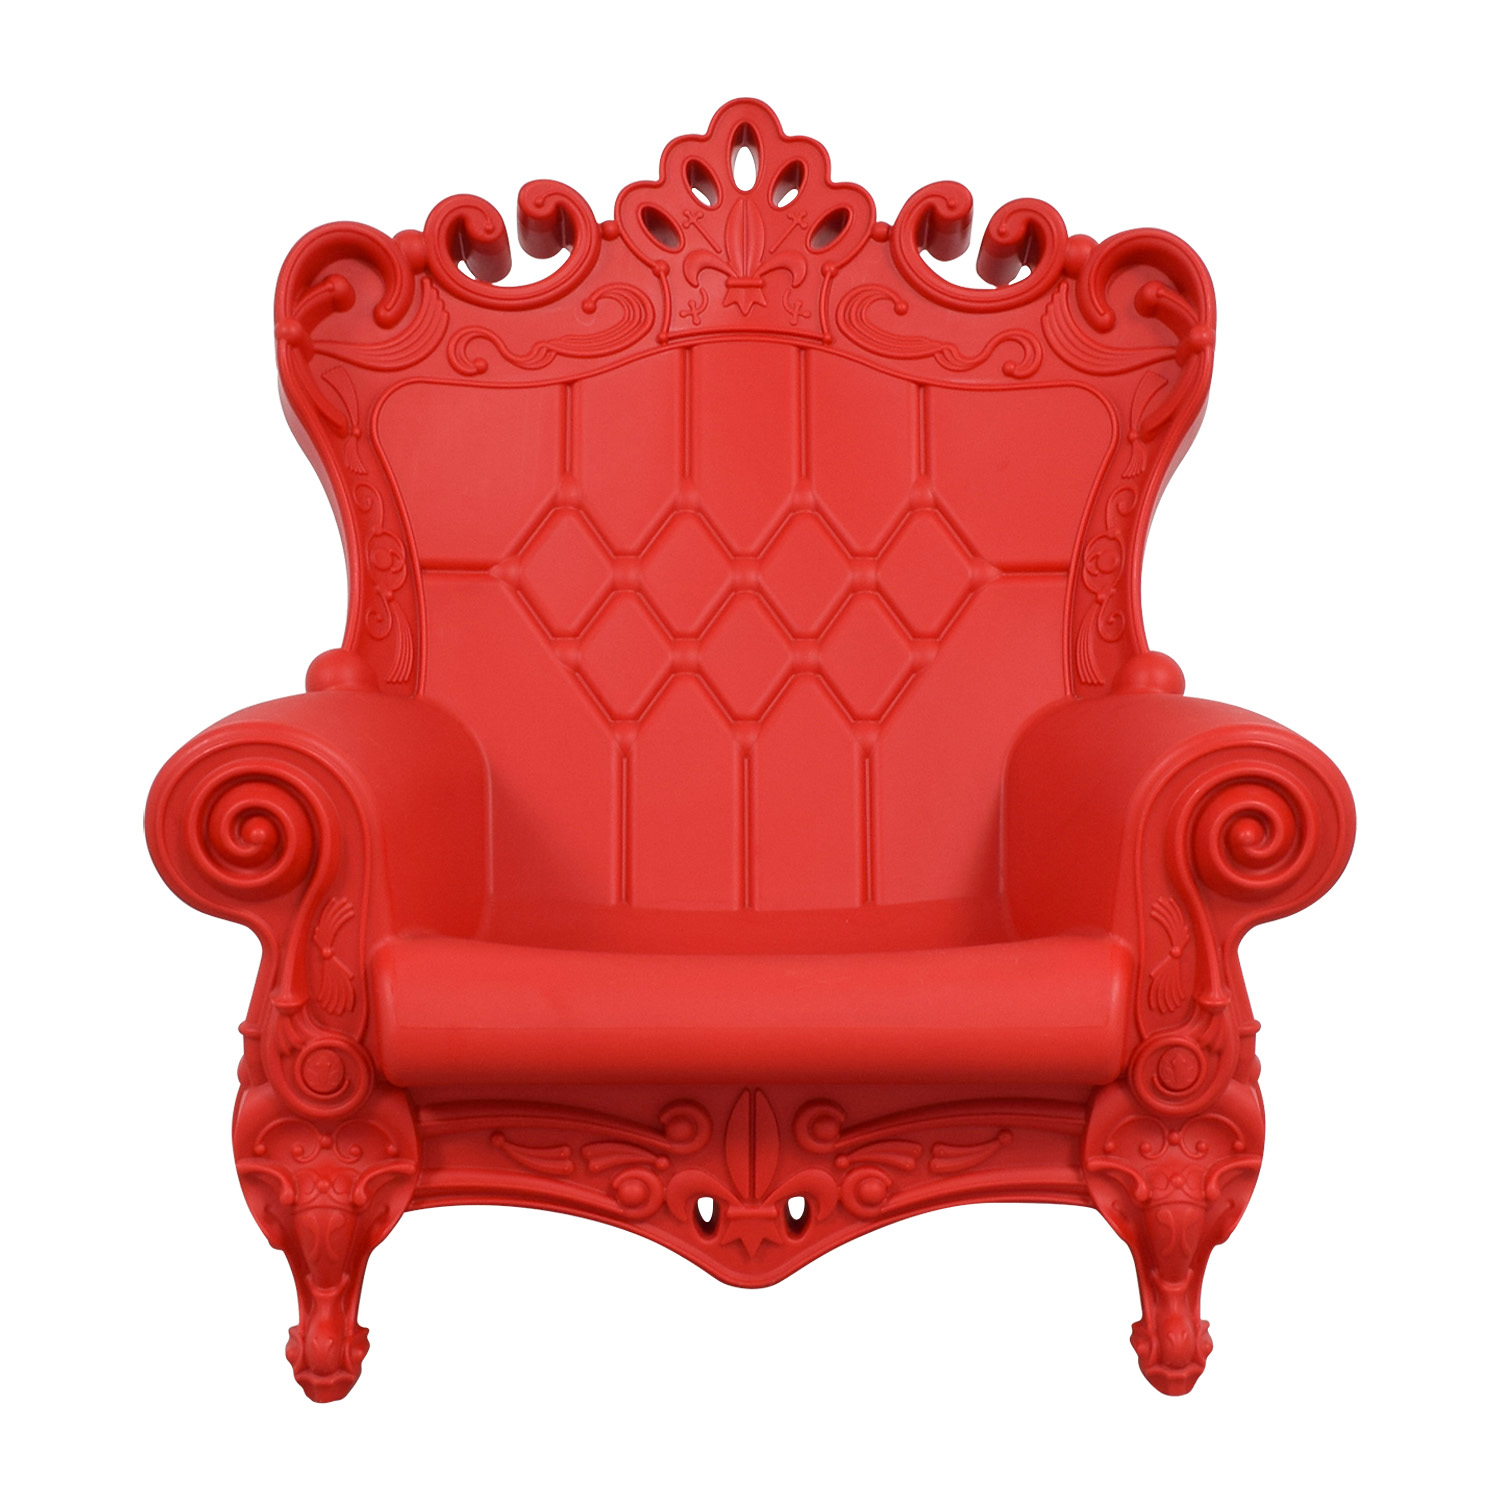 Queen Of Love Chair Knock Off